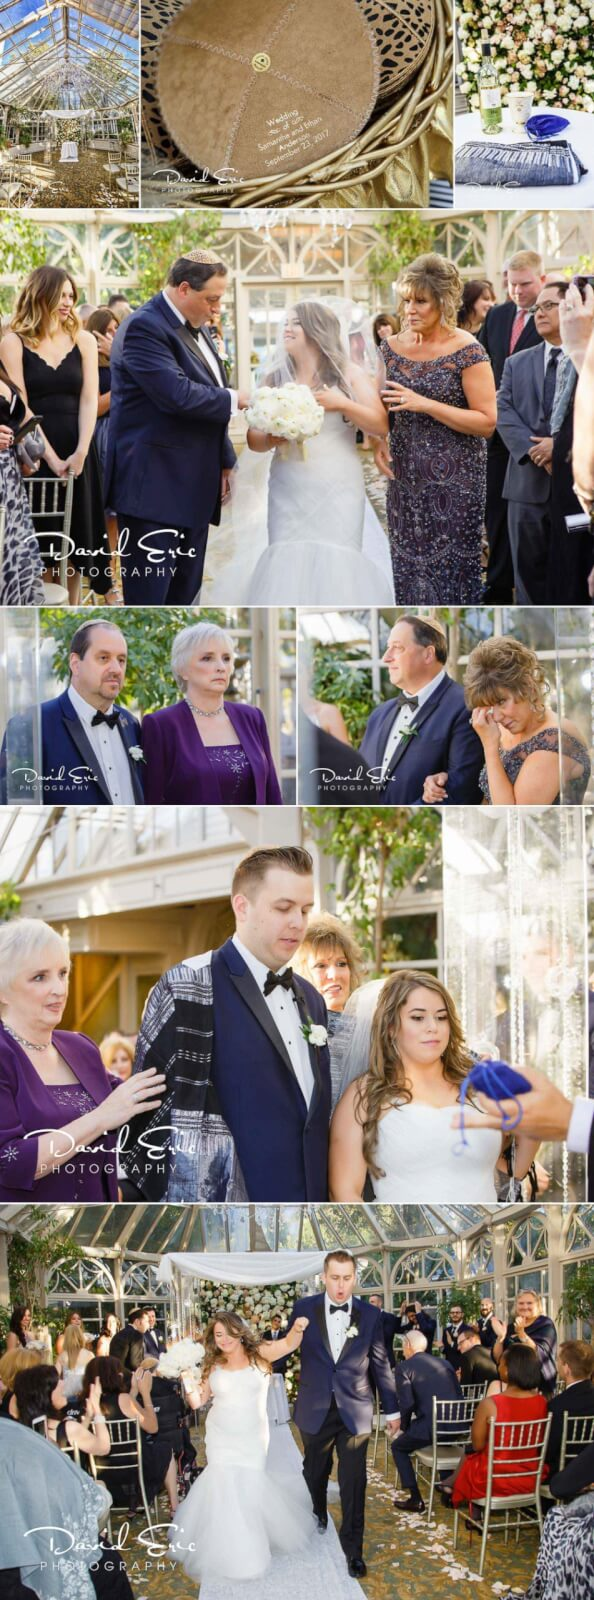 Wedding at The Brownstone photos and detials of a Jewish Ceremony